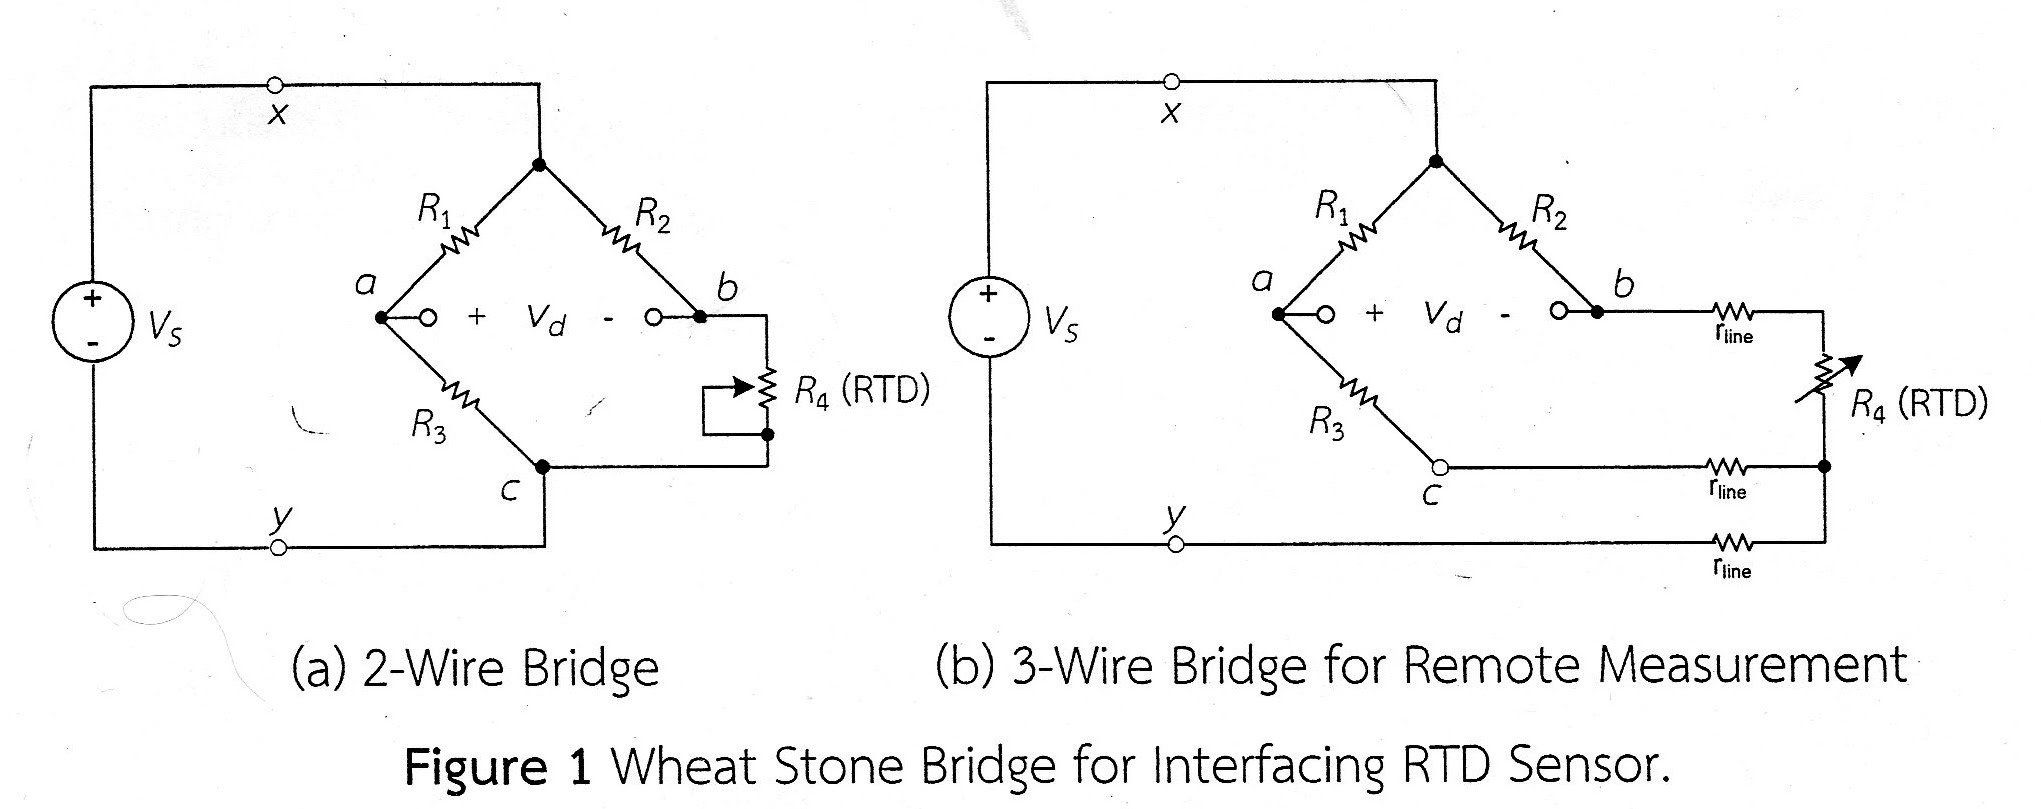 3 Wire Rtd Bridge further Rtd further Tools 12 as well 3 Wire Rtd in addition 3 Wire Rtd Bridge. on 3 wire rtd lead balance